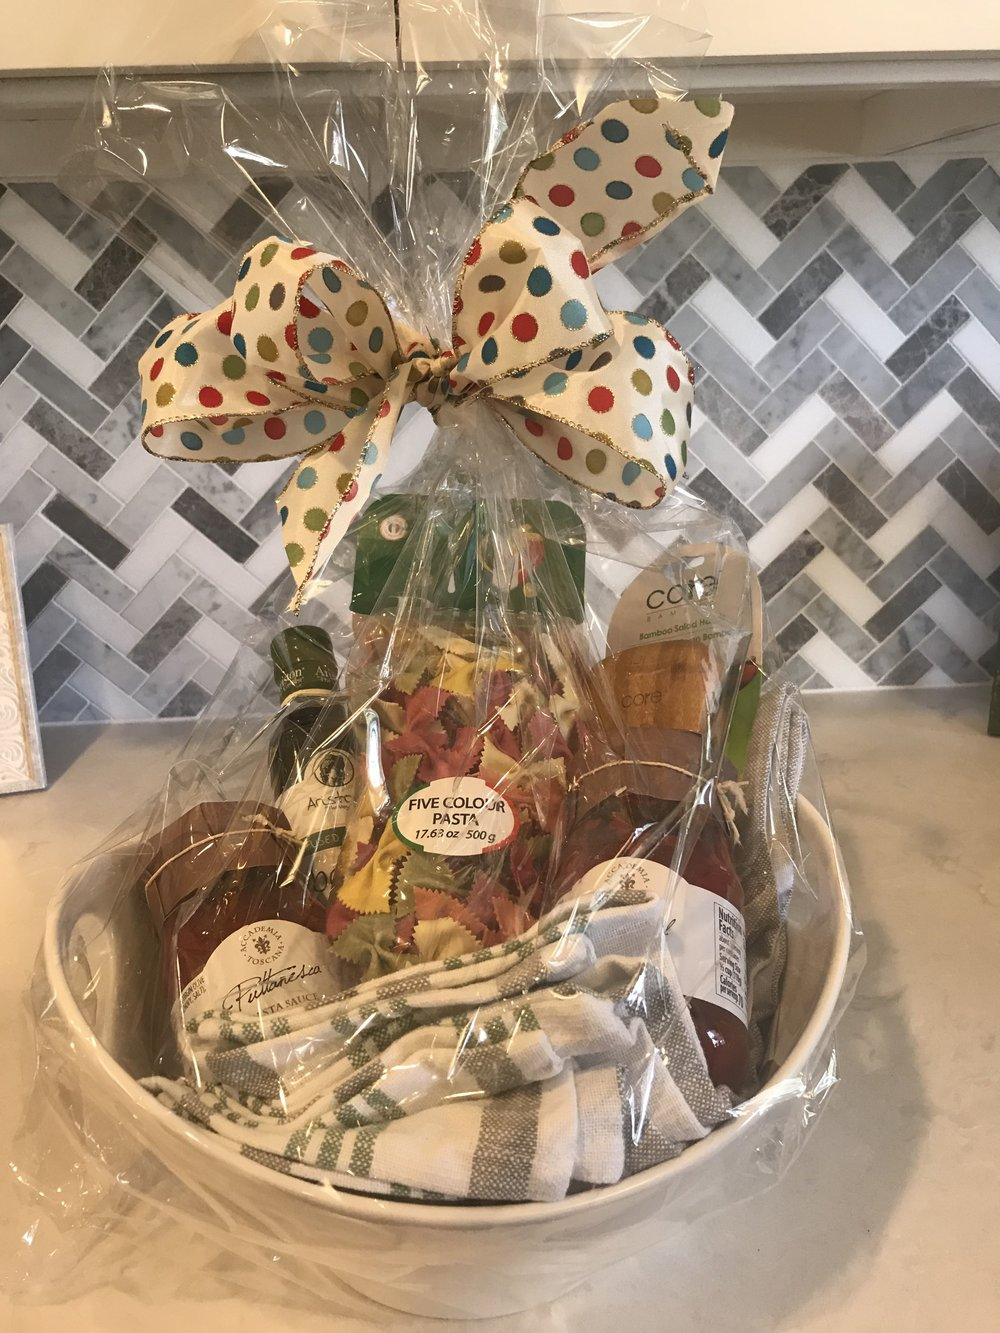 PASTA NIGHT BASKET   Enjoy a delicious pasta dinner with your family! Included in this large ceramic bowl are 3 dish towels, five color pasta, (2) pasta sauces, infused olive oil, and bamboo serving spoons.  DONOR: Laura Bridgeman VALUE: $50